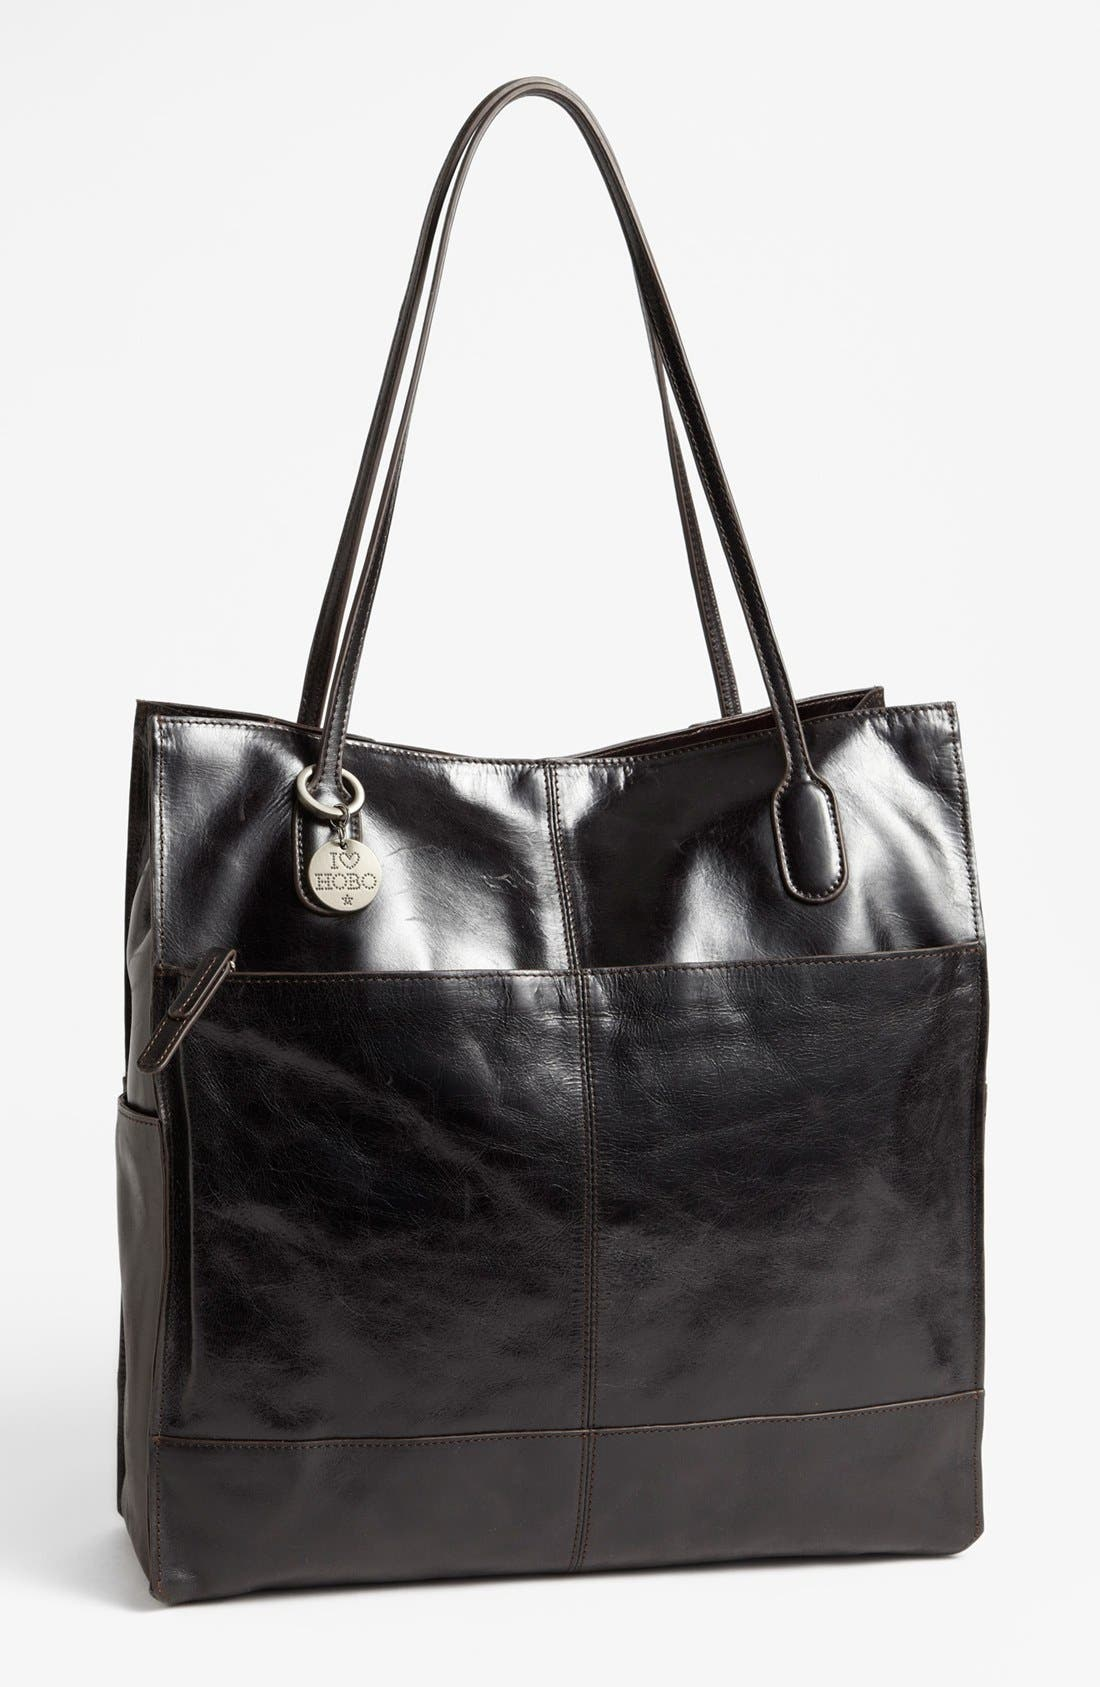 Alternate Image 1 Selected - Hobo 'Finley' Tote